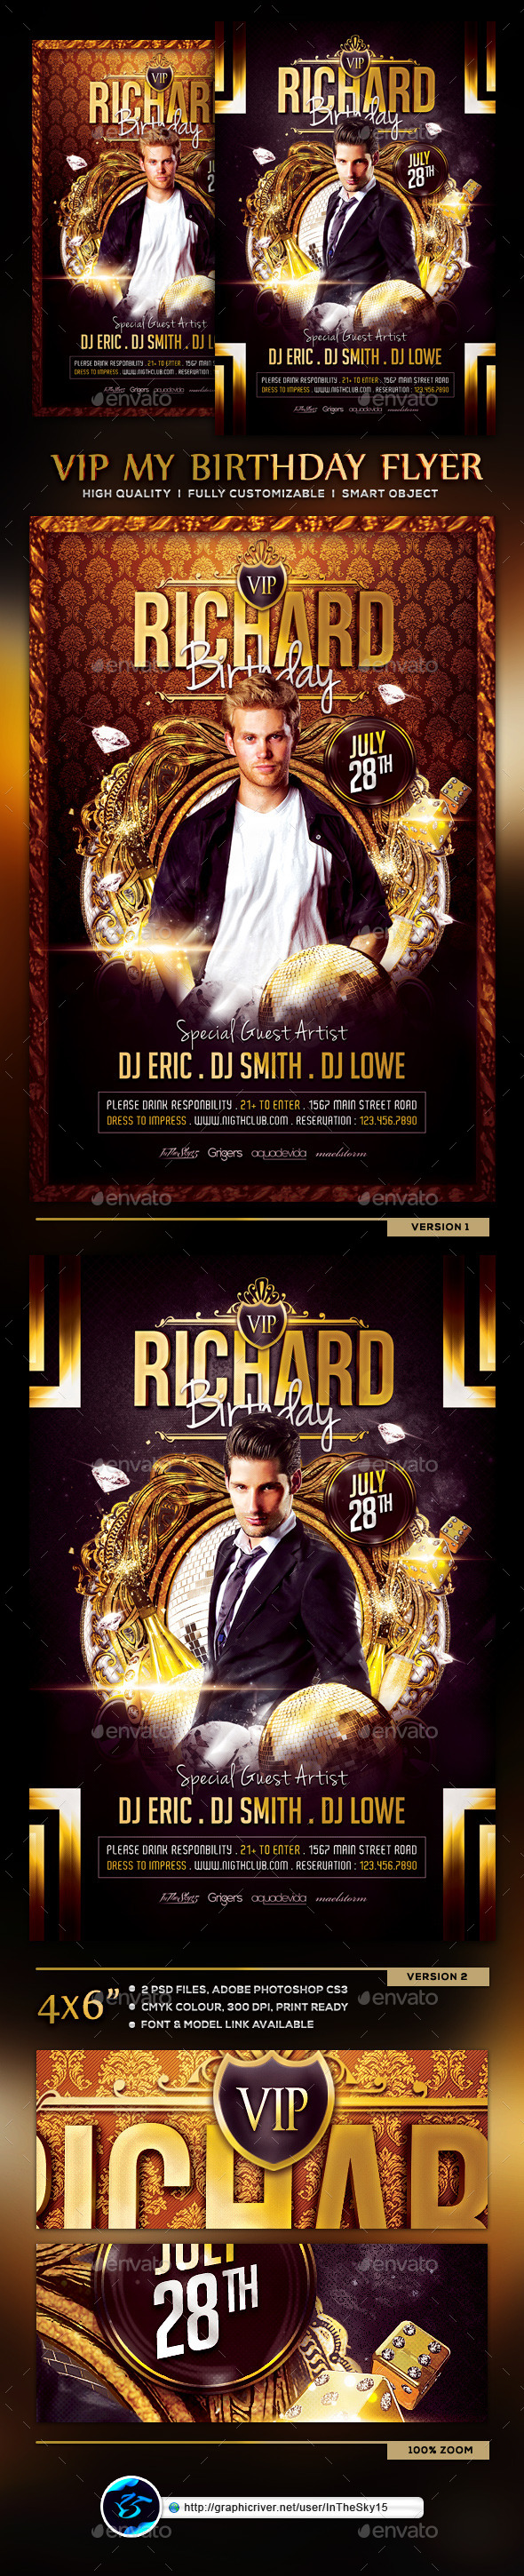 VIP My Birthday V3 Flyer Template - Flyers Print Templates